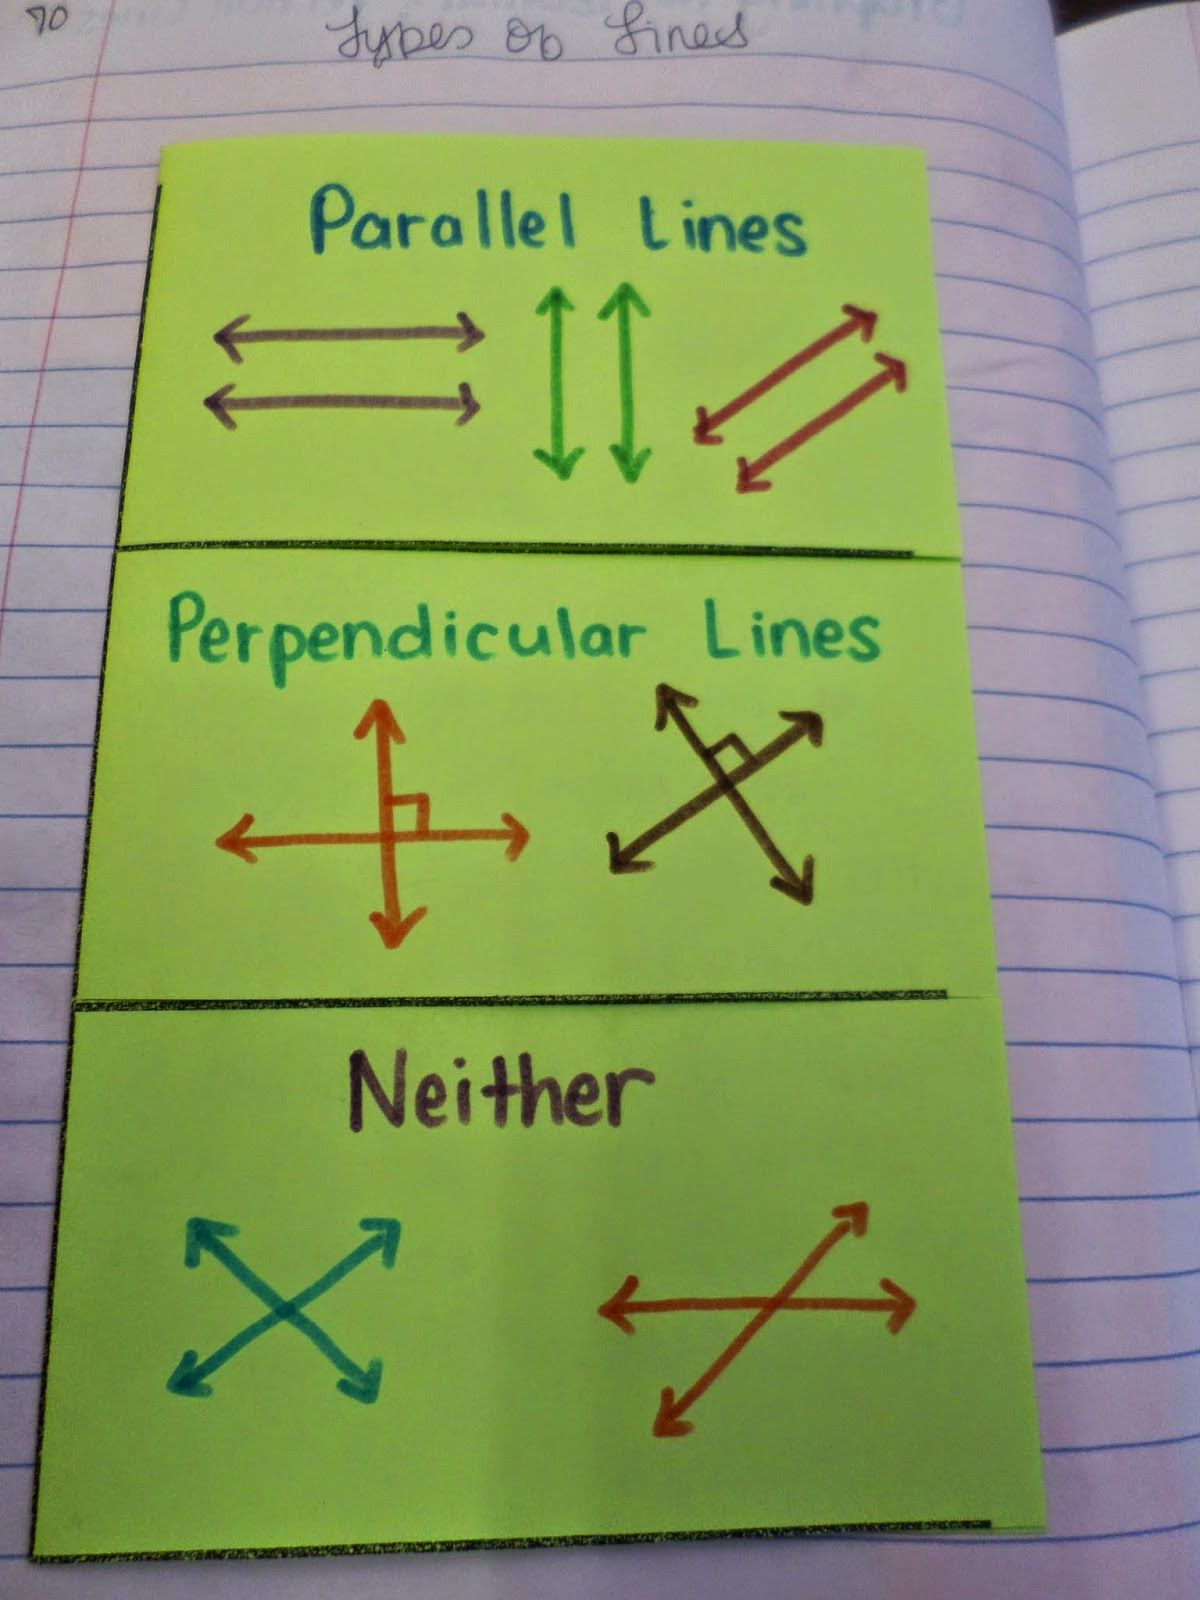 likewise Graphing Parallel And Perpendicular Lines Worksheet Doc Graph together with  moreover paring Equations of Parallel and Perpendicular Lines   Read also Parallel Perpendicular or Neither Math Education t also  further  moreover Unled moreover Math     Linear Graphs Interactive Notebook Pages in addition  in addition 4 3 Writing Equations of Parallel and Perpendicular Lines moreover Chapter 3  Parallel and Perpendicular Lines additionally  together with Parallel  Perpendicular  or Neither  Alge Activity by The Math Lab further Parallel and Perpendicular Lines Worksheet by Kevin Wilda   TpT as well . on parallel perpendicular or neither worksheet